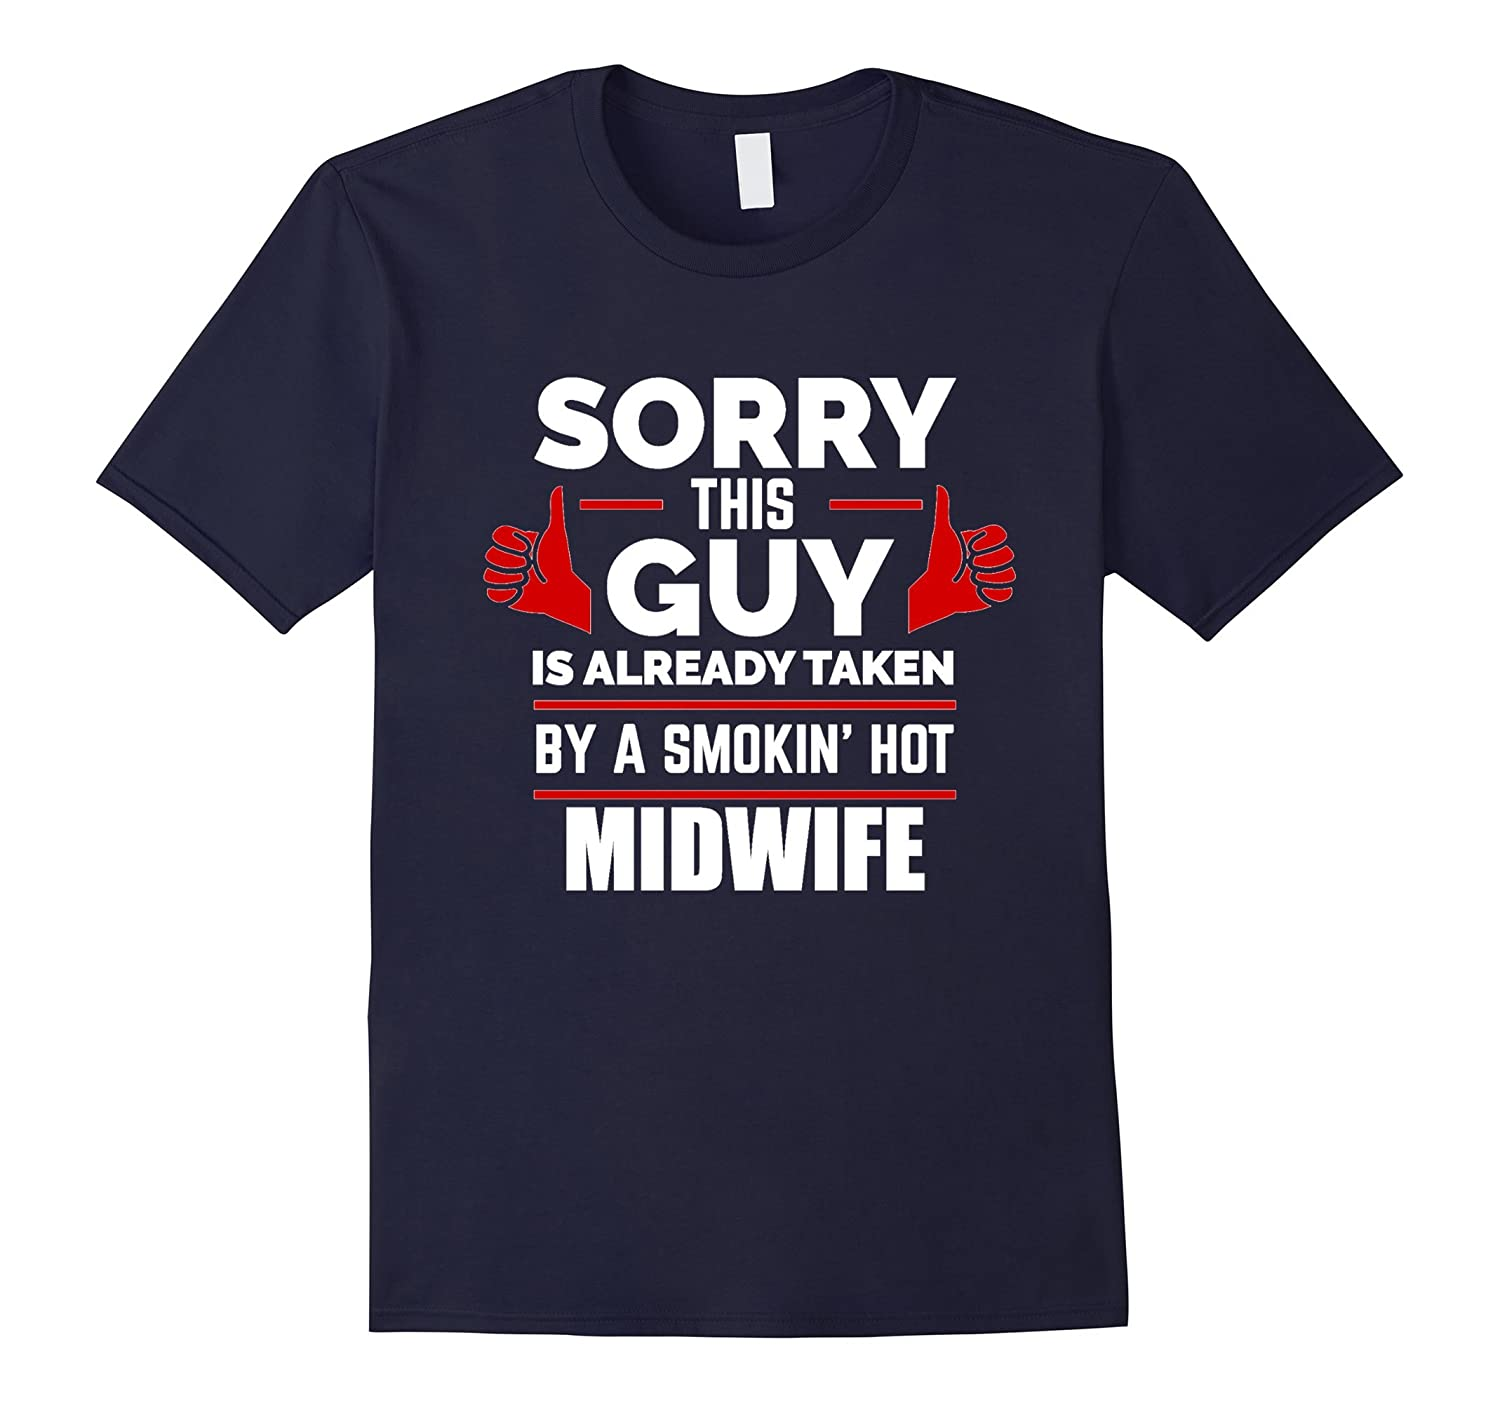 Sorry This Guy is Taken by Smoking Hot Midwife T-shirt-TH